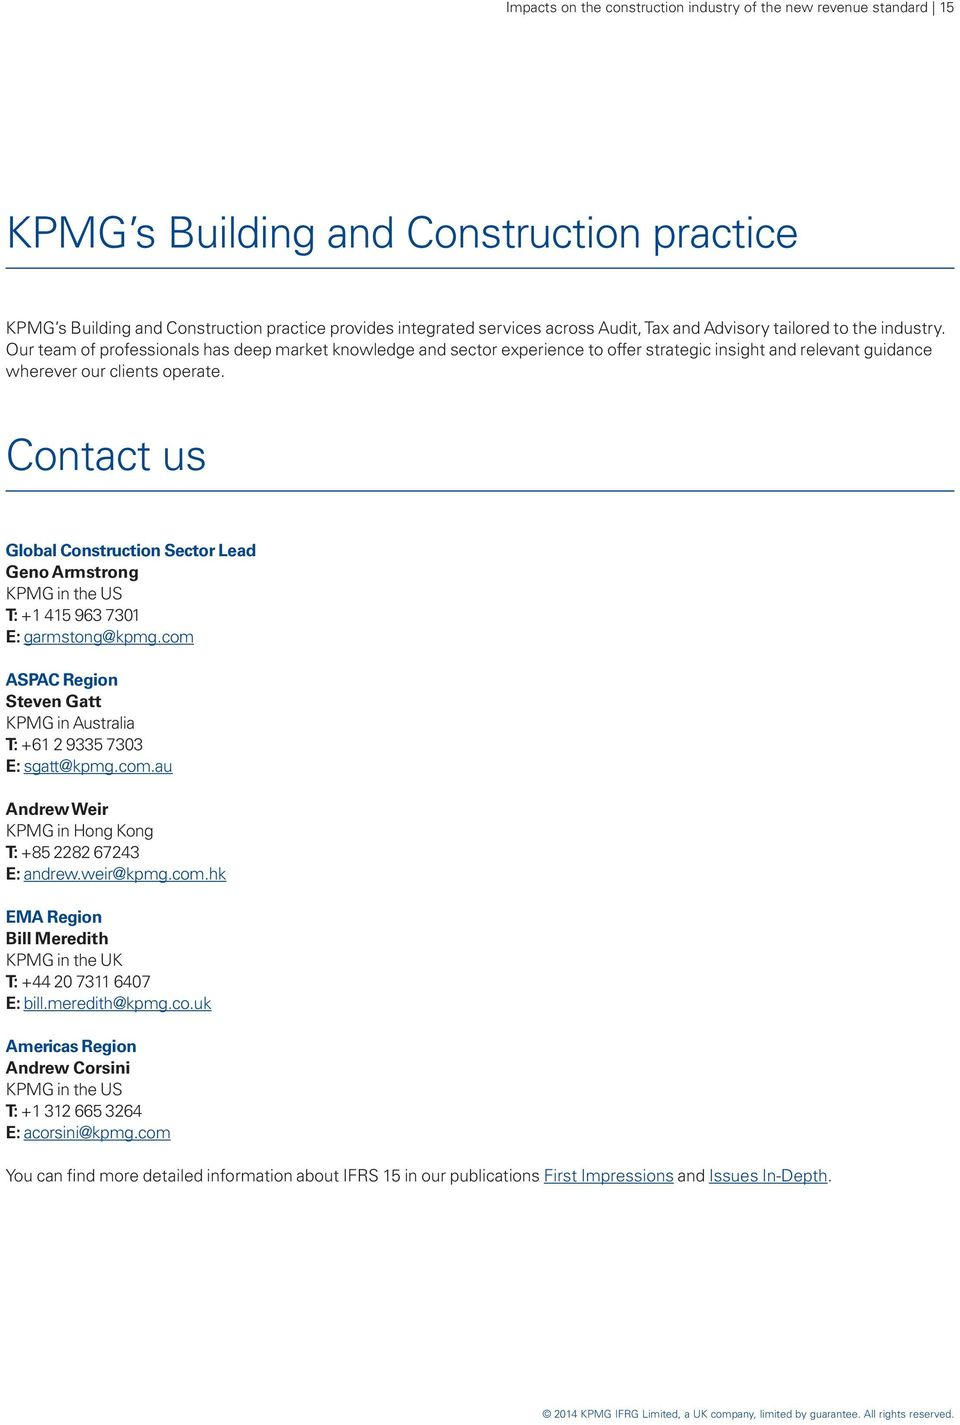 Contact us Global Construction Sector Lead Geno Armstrong KPMG in the US T: +1 415 963 7301 E: garmstong@kpmg.com ASPAC Region Steven Gatt KPMG in Australia T: +61 2 9335 7303 E: sgatt@kpmg.com.au Andrew Weir KPMG in Hong Kong T: +85 2282 67243 E: andrew.